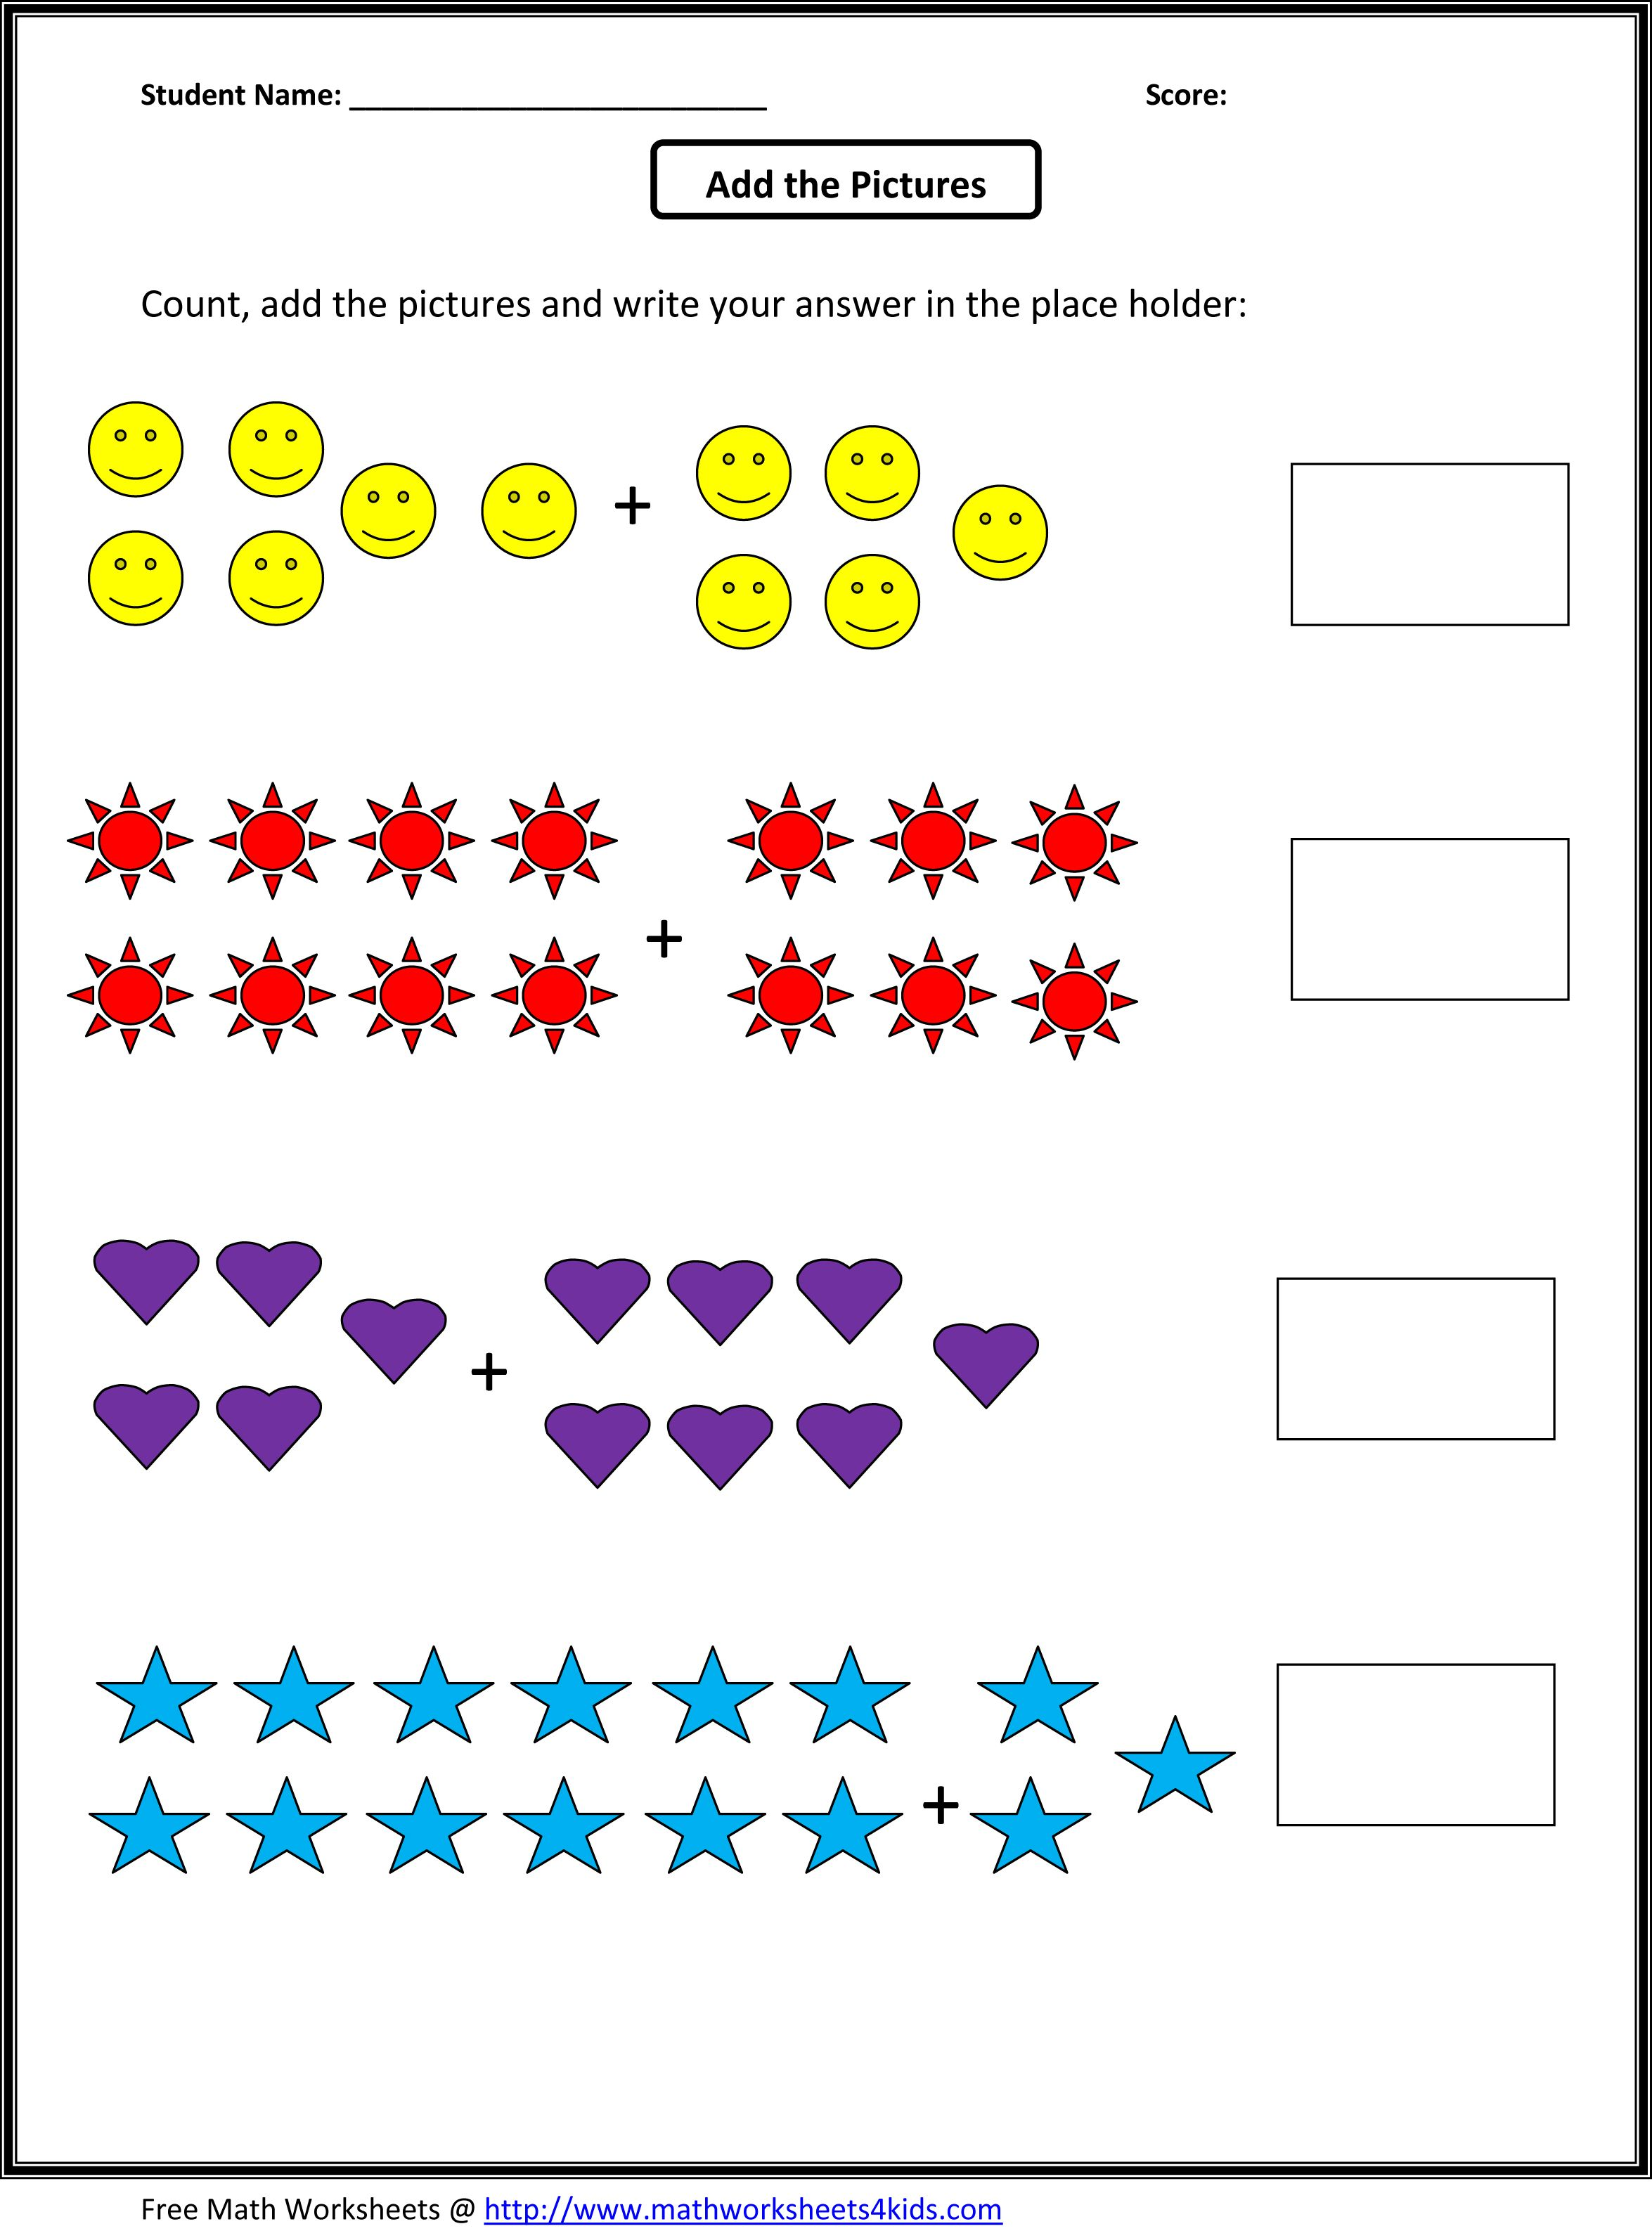 Aldiablosus  Surprising Worksheet For Math Grade   Coffemix With Fair  Images About School On Pinterest  Mental Maths Worksheets  With Lovely Year  Sats Worksheets Also Worksheets Phonics In Addition Handwriting Practice Worksheets For Kids And Kindergarten Reading Worksheets Free Printable As Well As Note Worksheets Additionally Worksheets For First Grade Writing From Coffemixcom With Aldiablosus  Fair Worksheet For Math Grade   Coffemix With Lovely  Images About School On Pinterest  Mental Maths Worksheets  And Surprising Year  Sats Worksheets Also Worksheets Phonics In Addition Handwriting Practice Worksheets For Kids From Coffemixcom